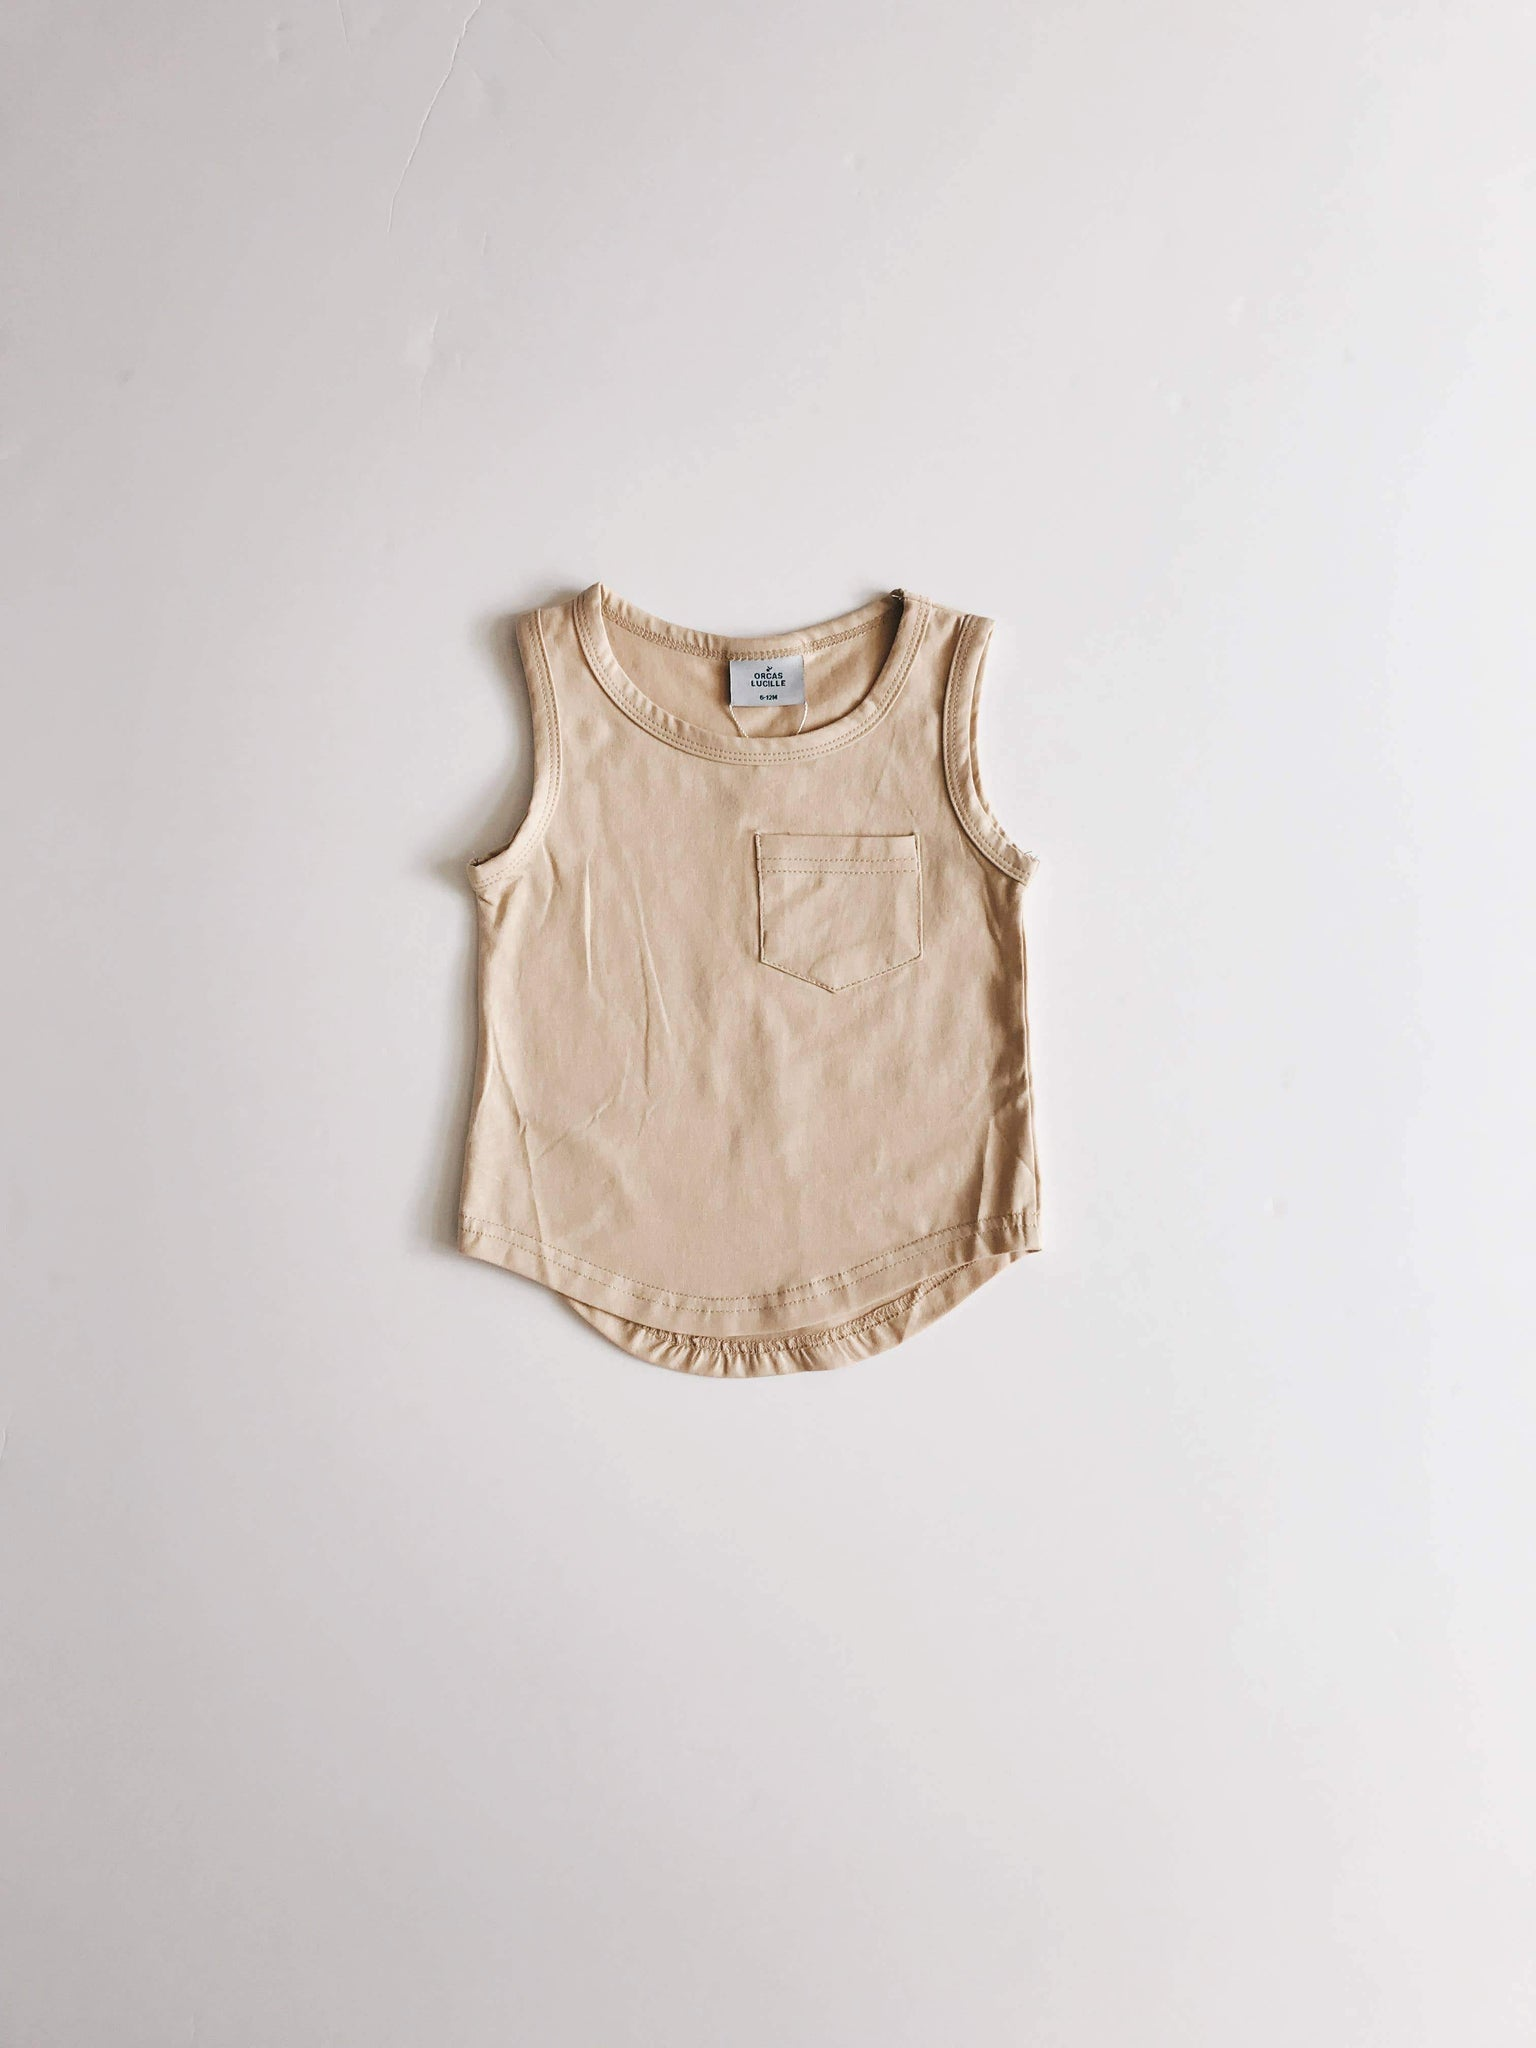 Pocket Tank Top - Sand - Little Adi + Co.